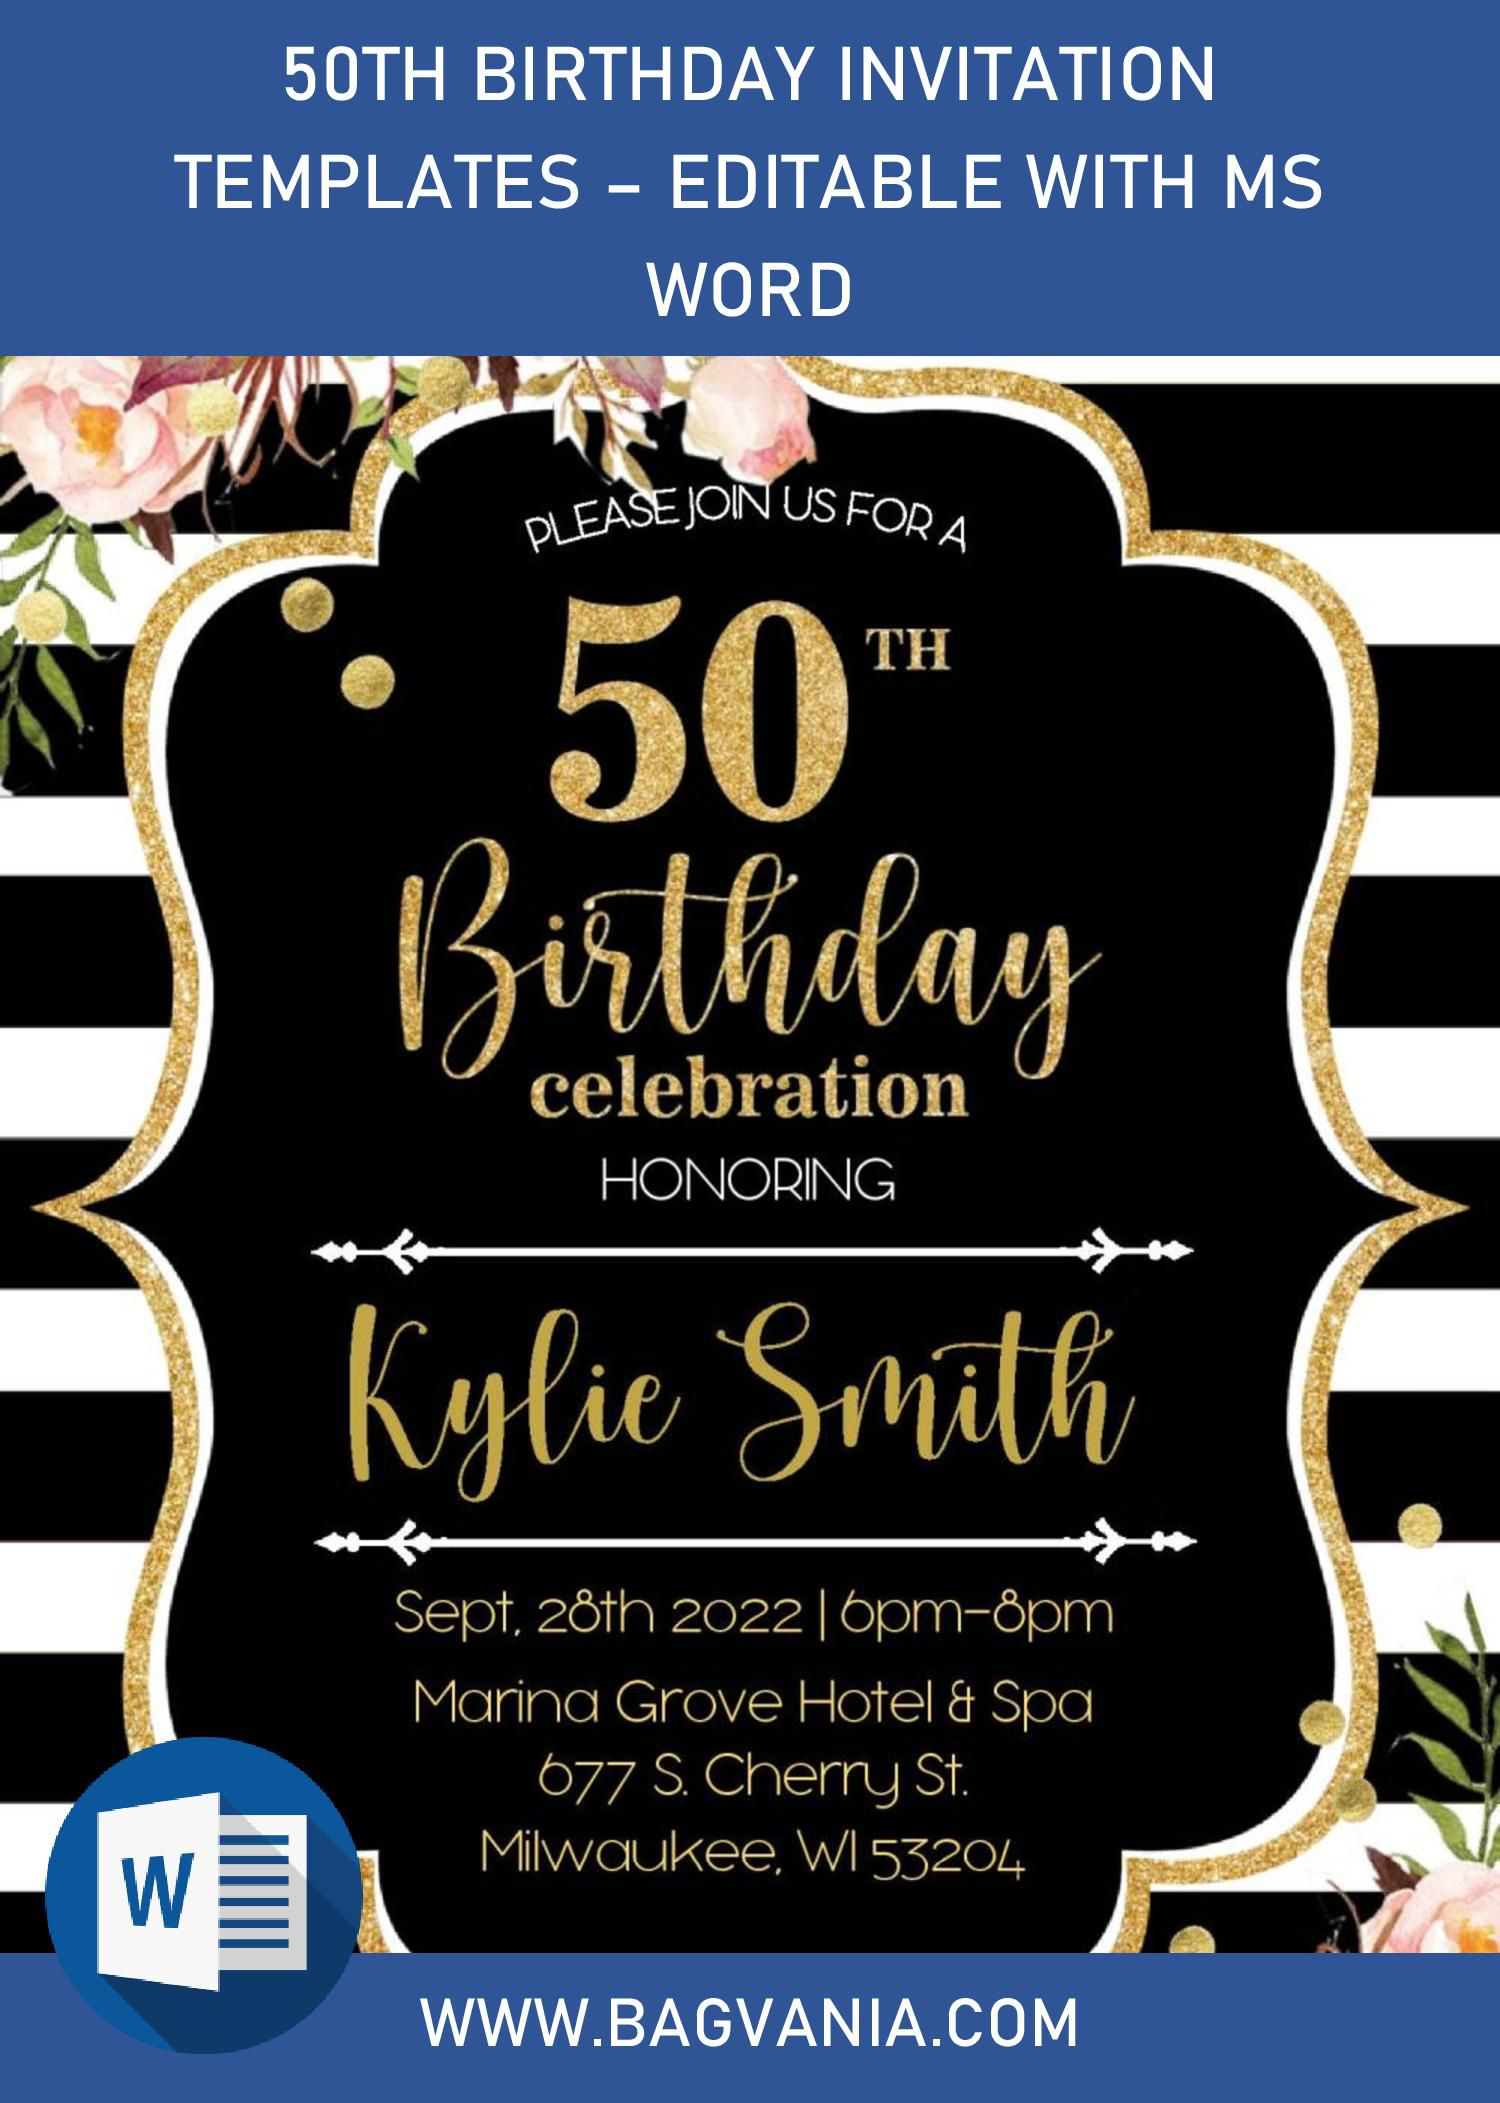 003 Phenomenal Microsoft Word 50th Birthday Invitation Template Highest Quality  Editable Wedding AnniversaryFull